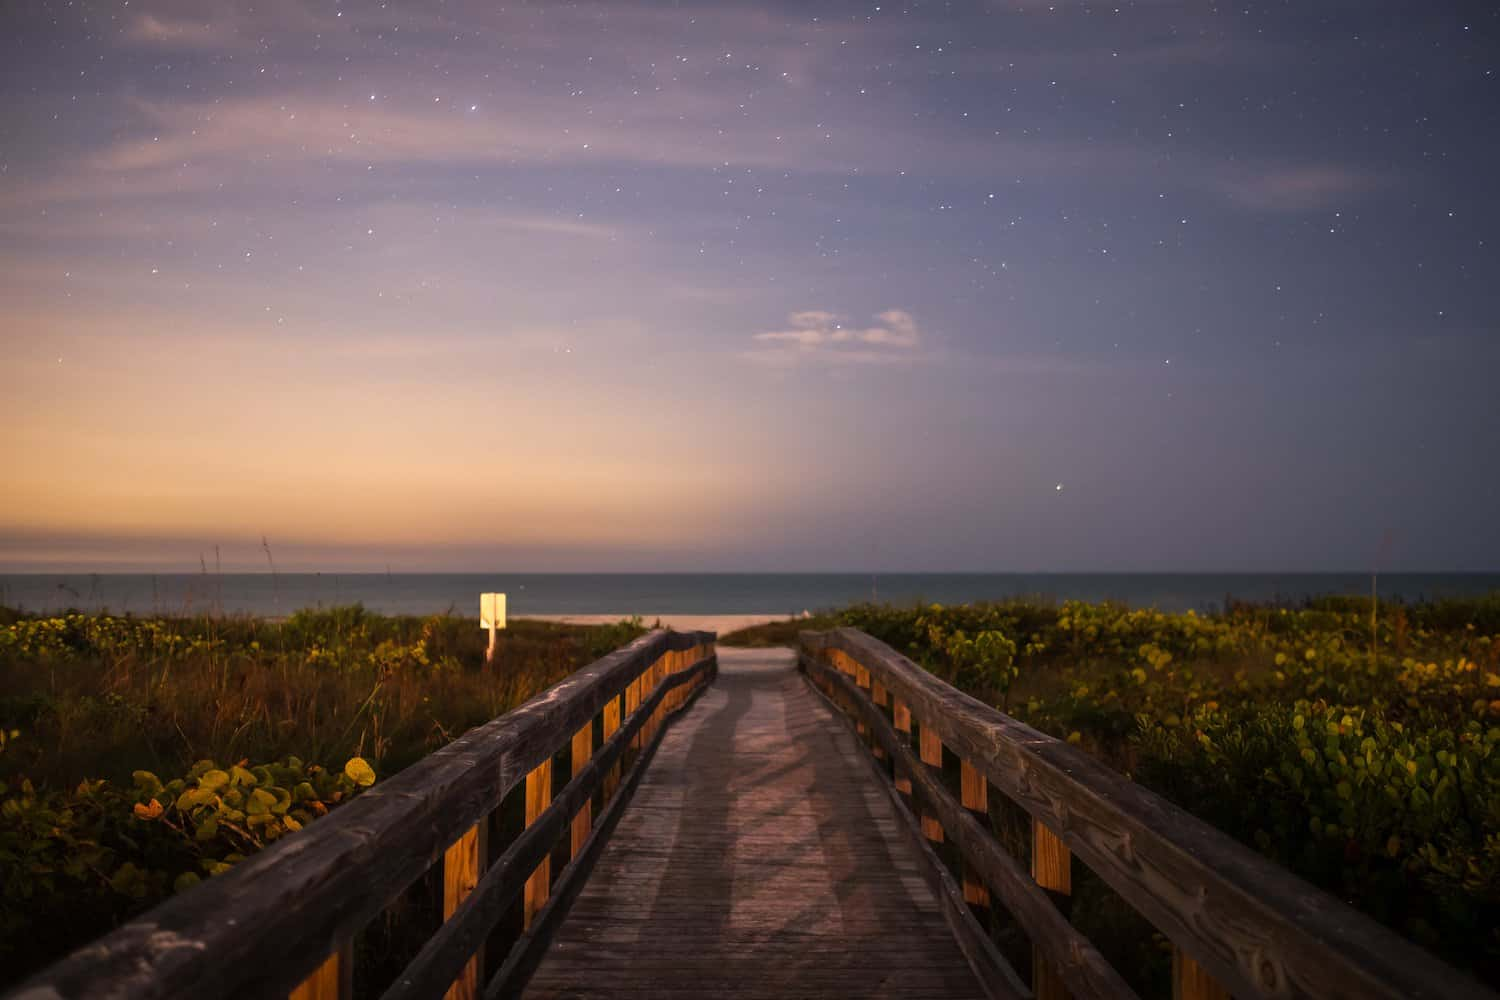 Stargazing in Florida - Giuseppe Milo via Flickr